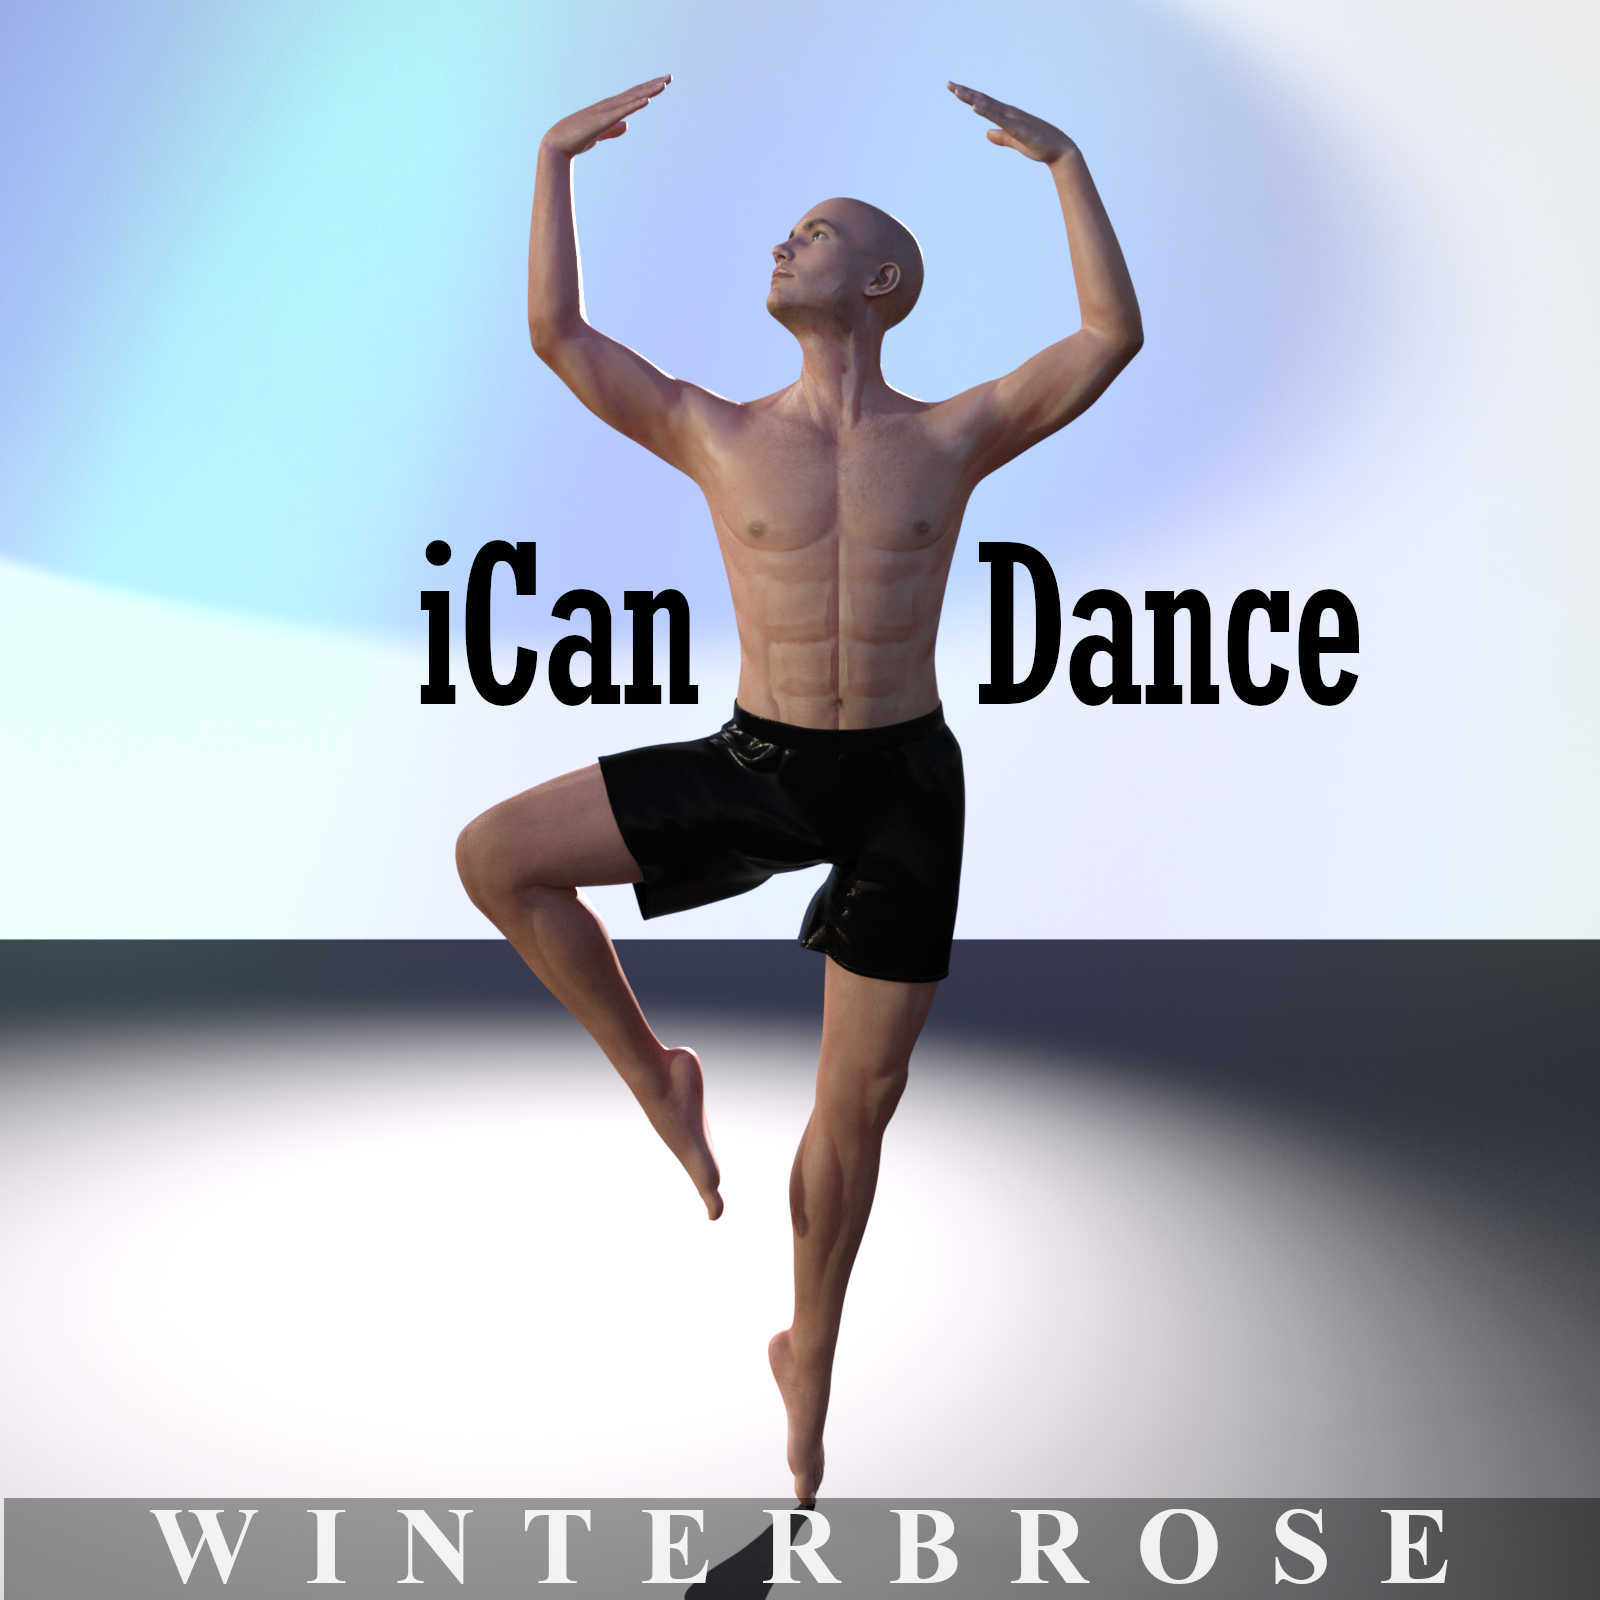 iCan DANCE Poses for Genesis 8 Male (G8M)